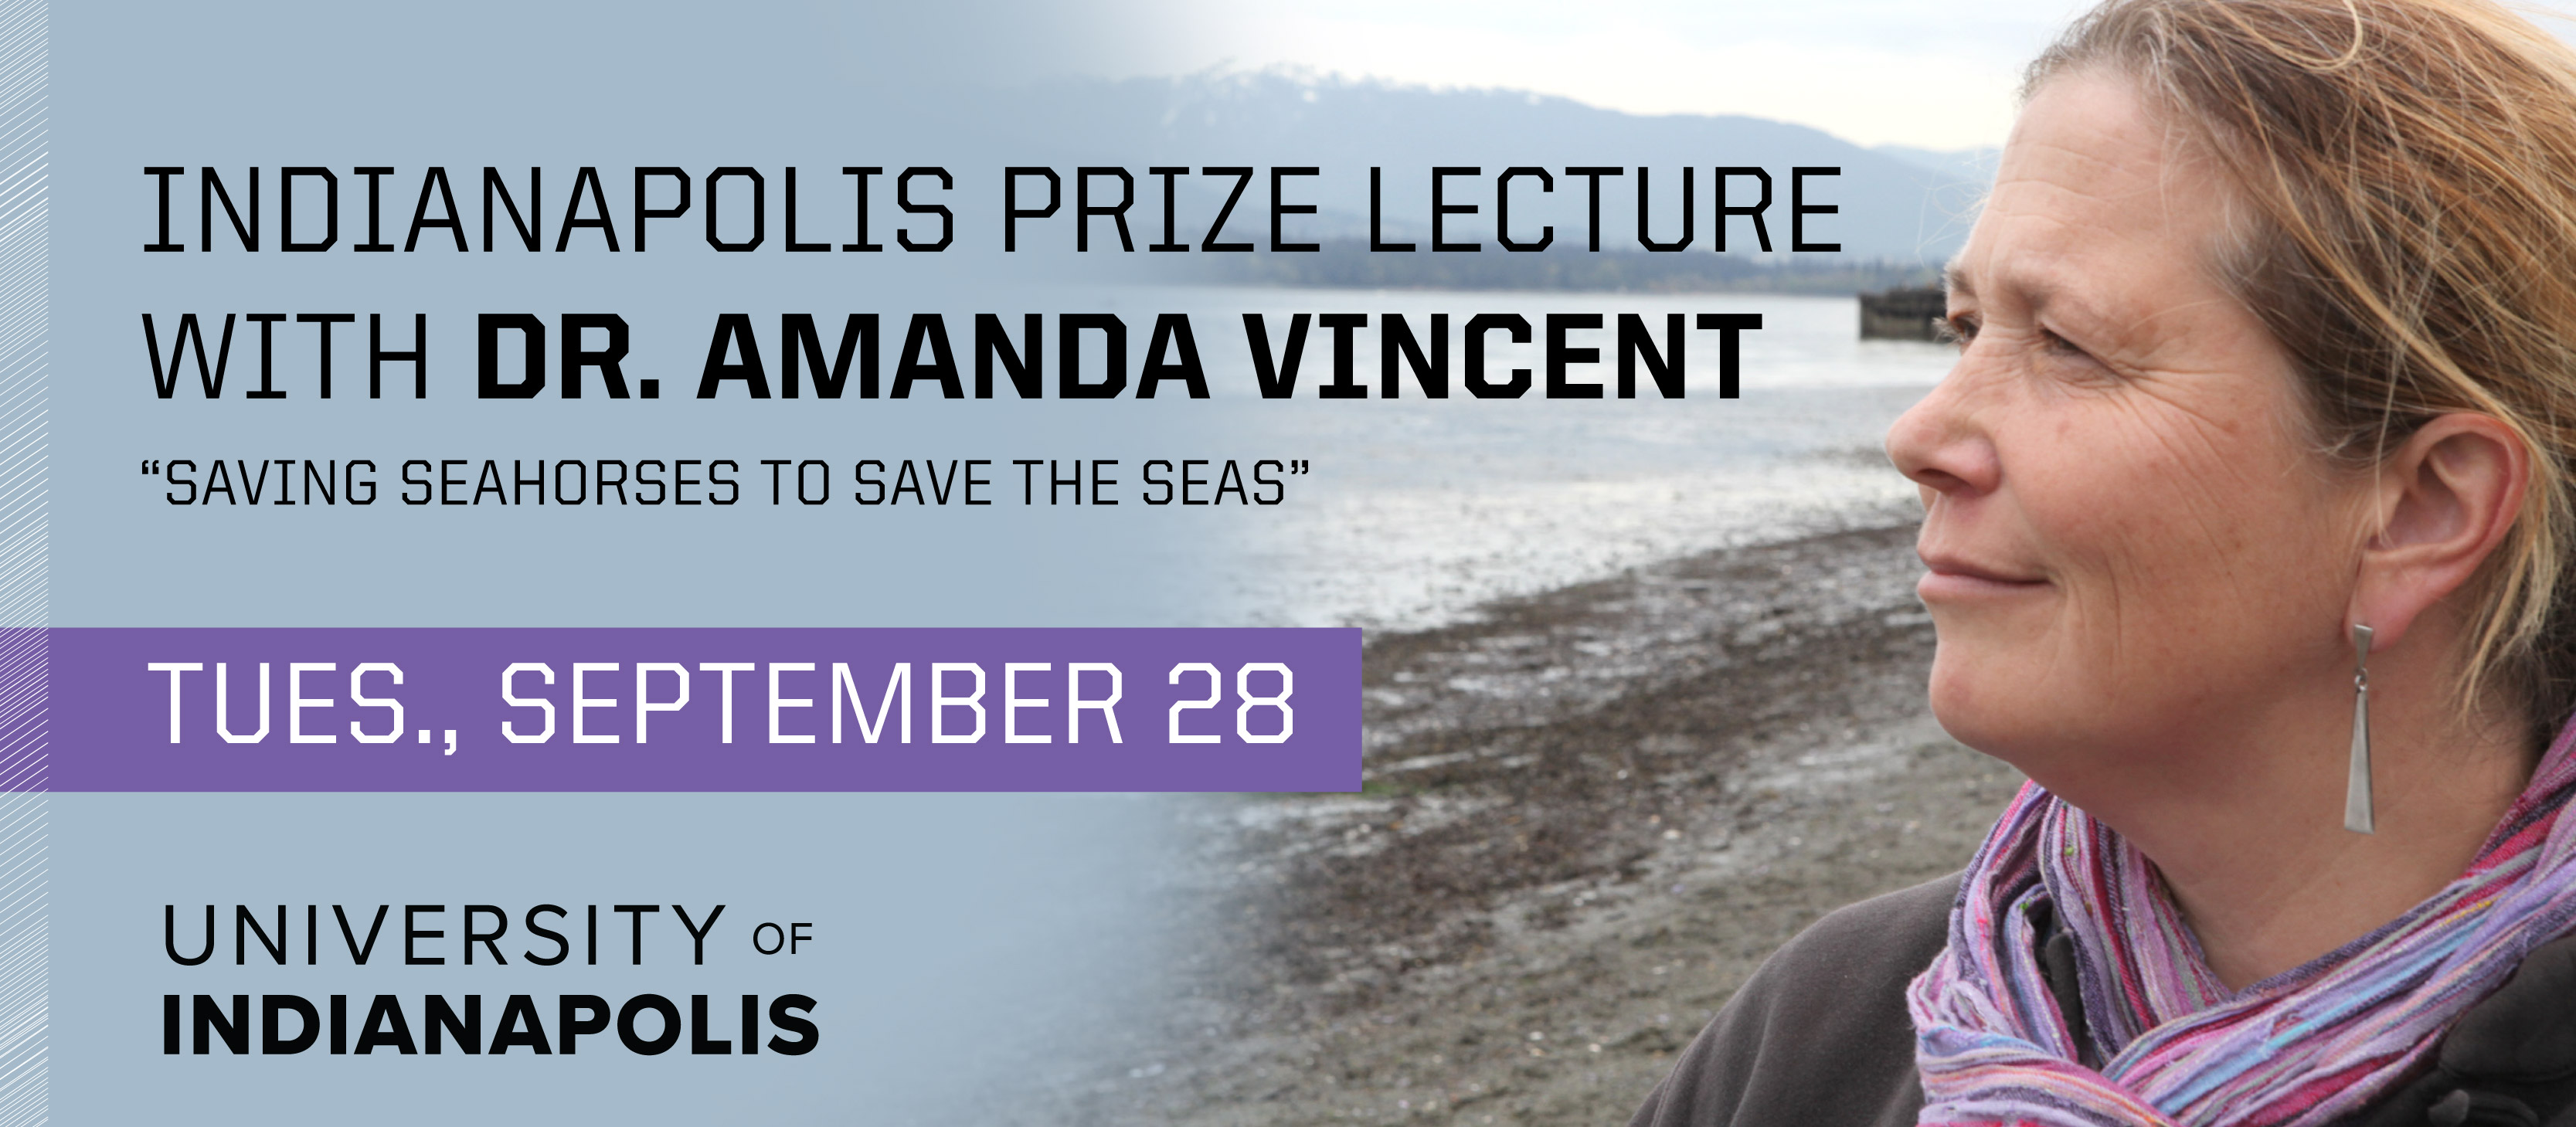 Indianapolis Prize Lecture with Dr. Amanda Vincent on Tuesday, September 28